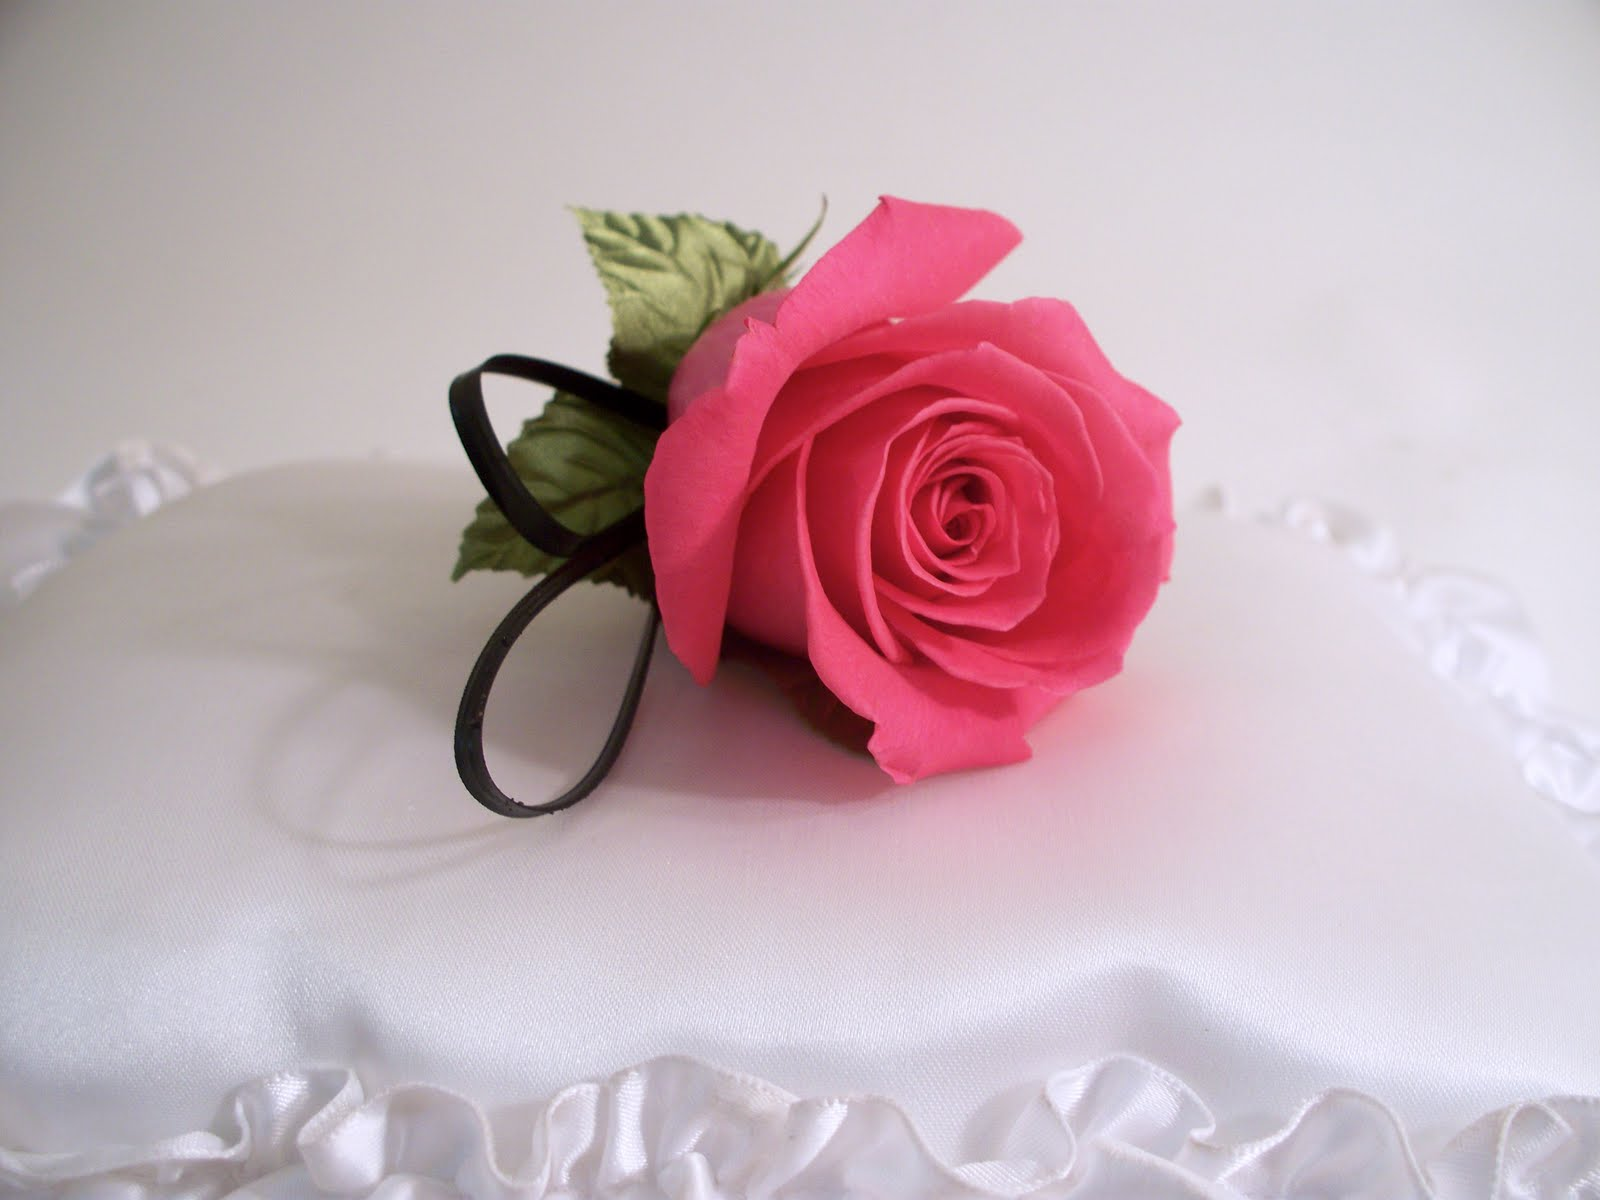 A lovely hot pink rose with